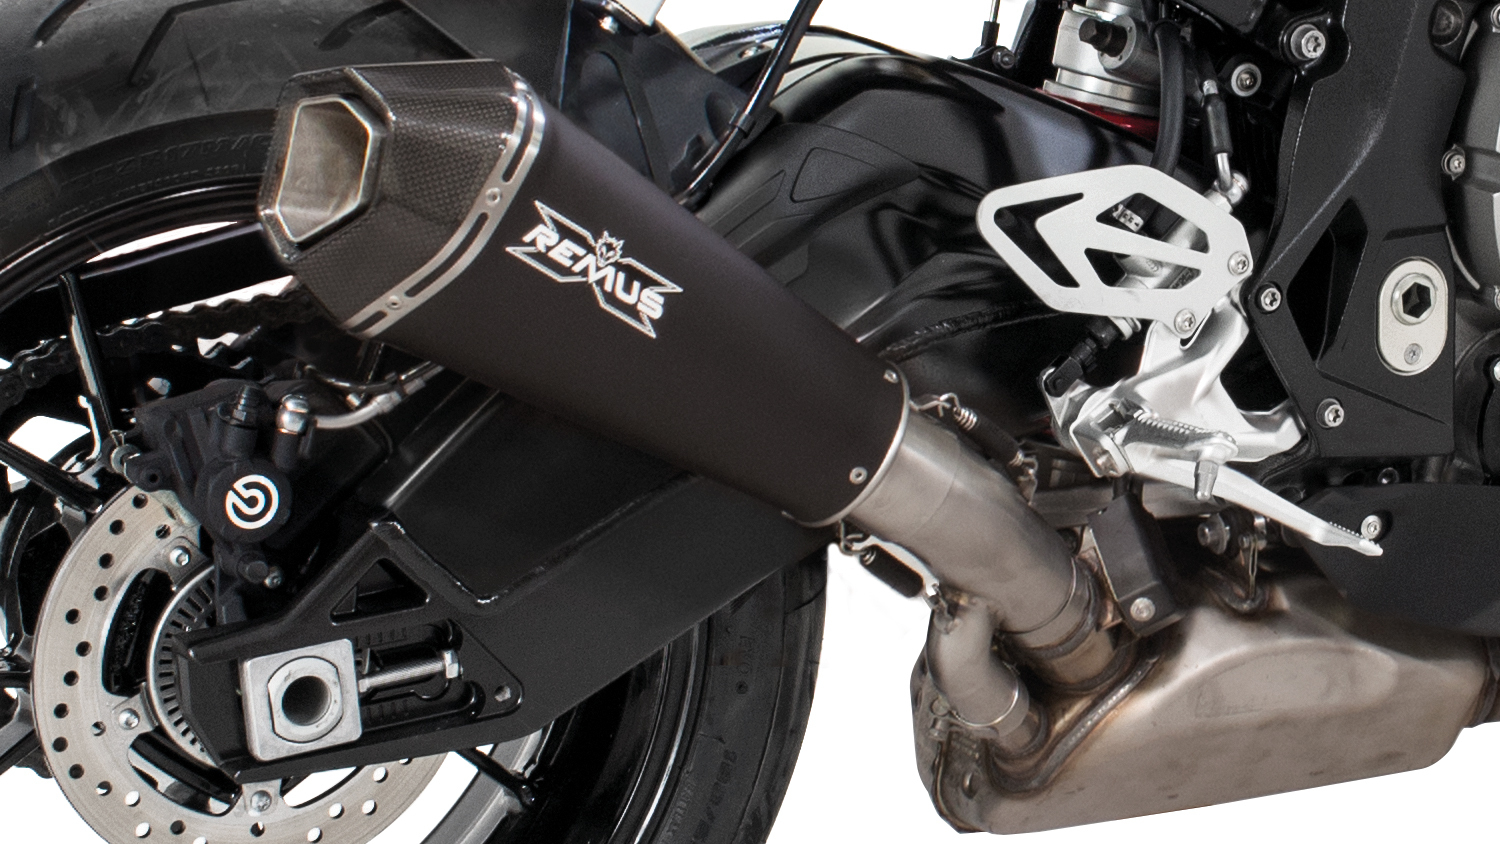 REMUS silencer stainless steel black BMW S 1000 RR from 2017, EEC - Image 2